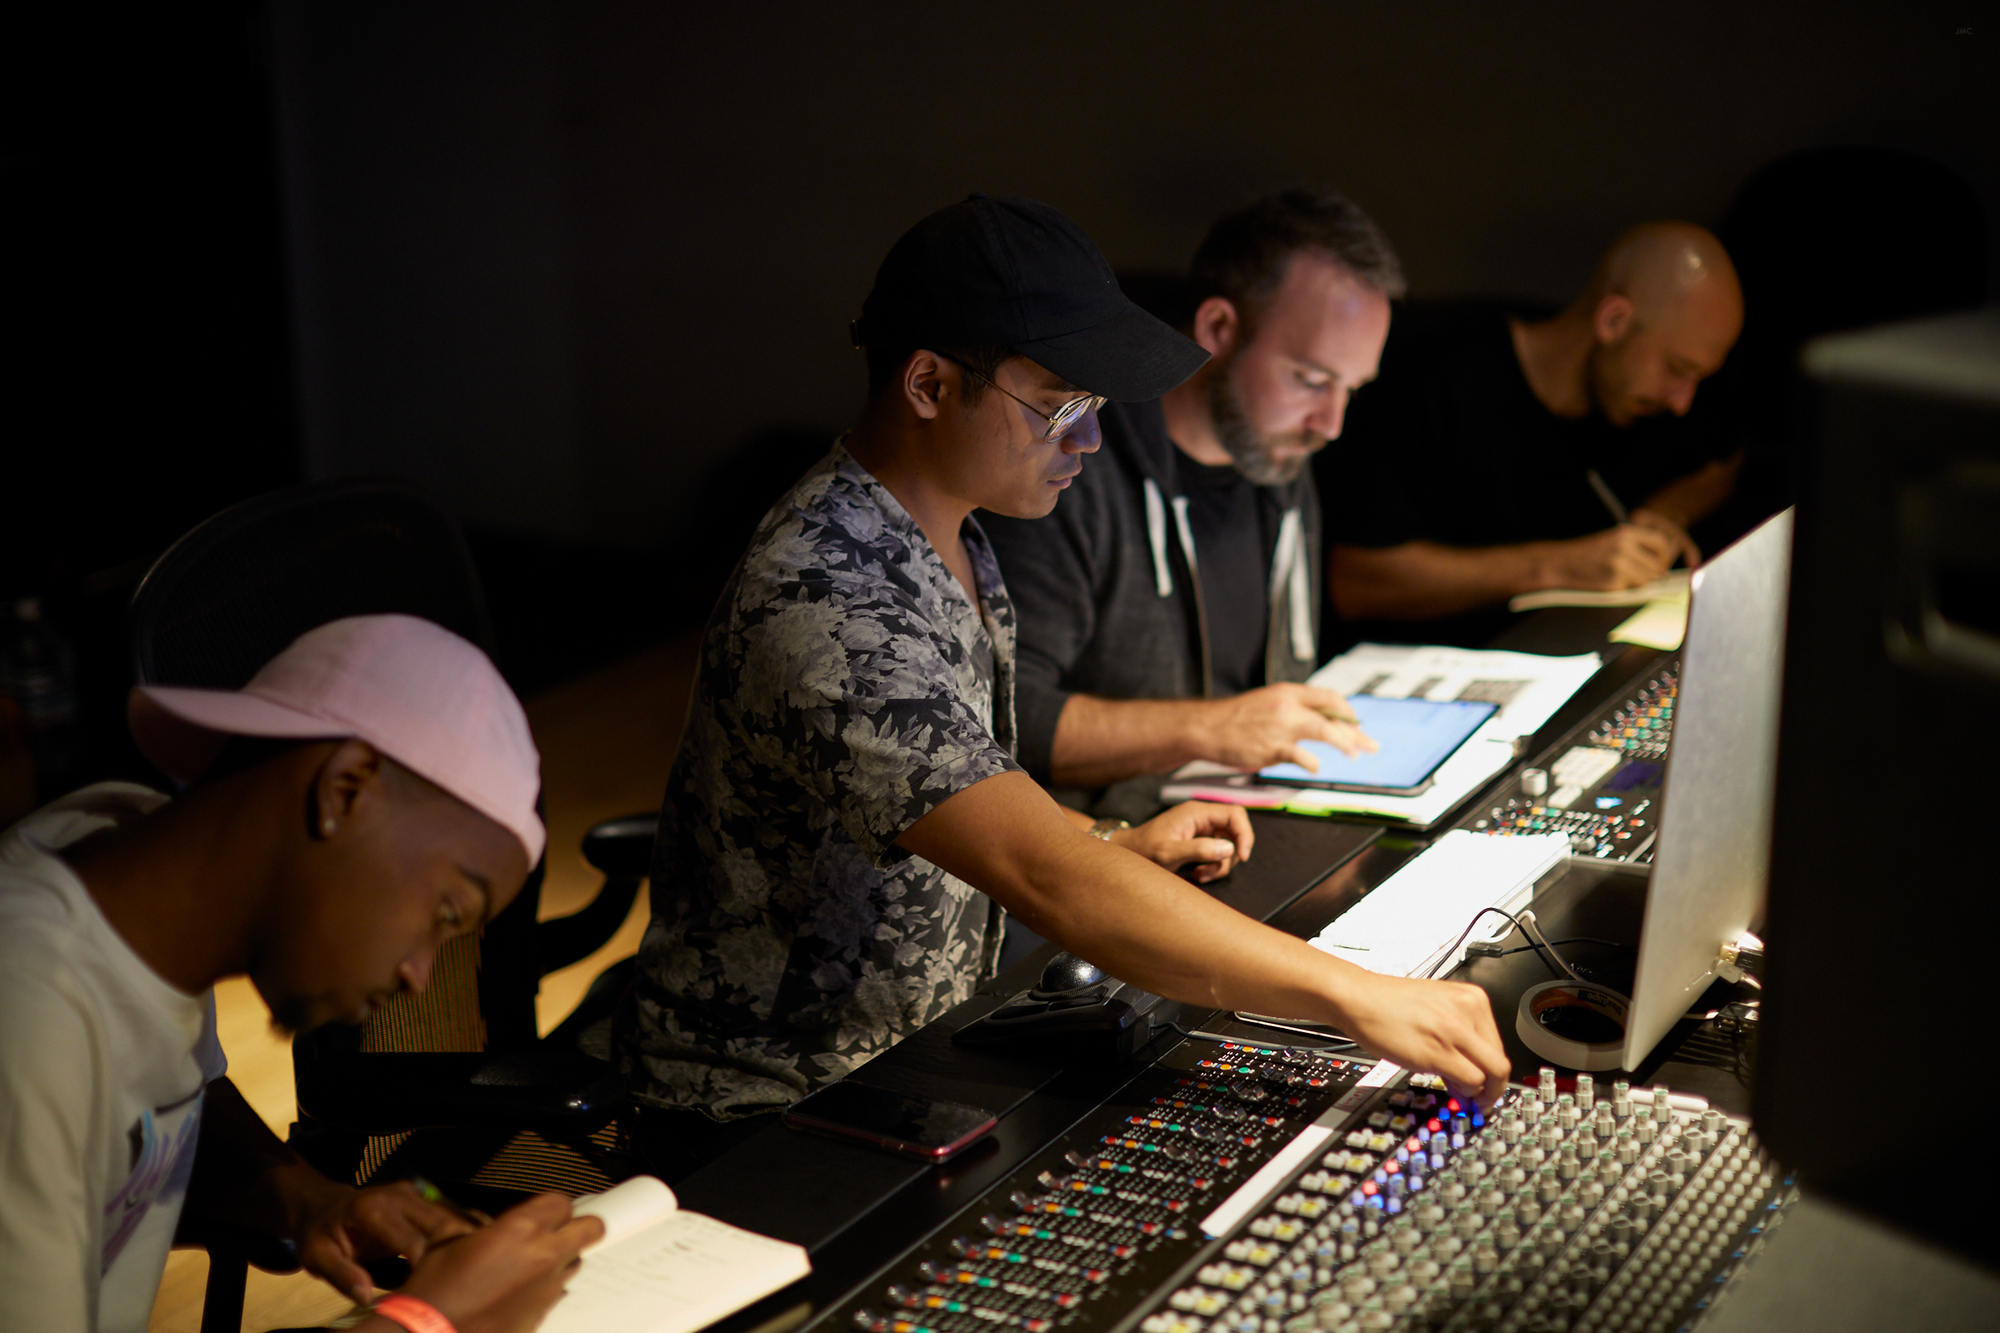 Emmanuel Ramos (center) engineers during the first season production of Heroics, in Los Angeles California (2019). Also pictured (from Right) , Justin McLachlan and Erik Jourgensen.